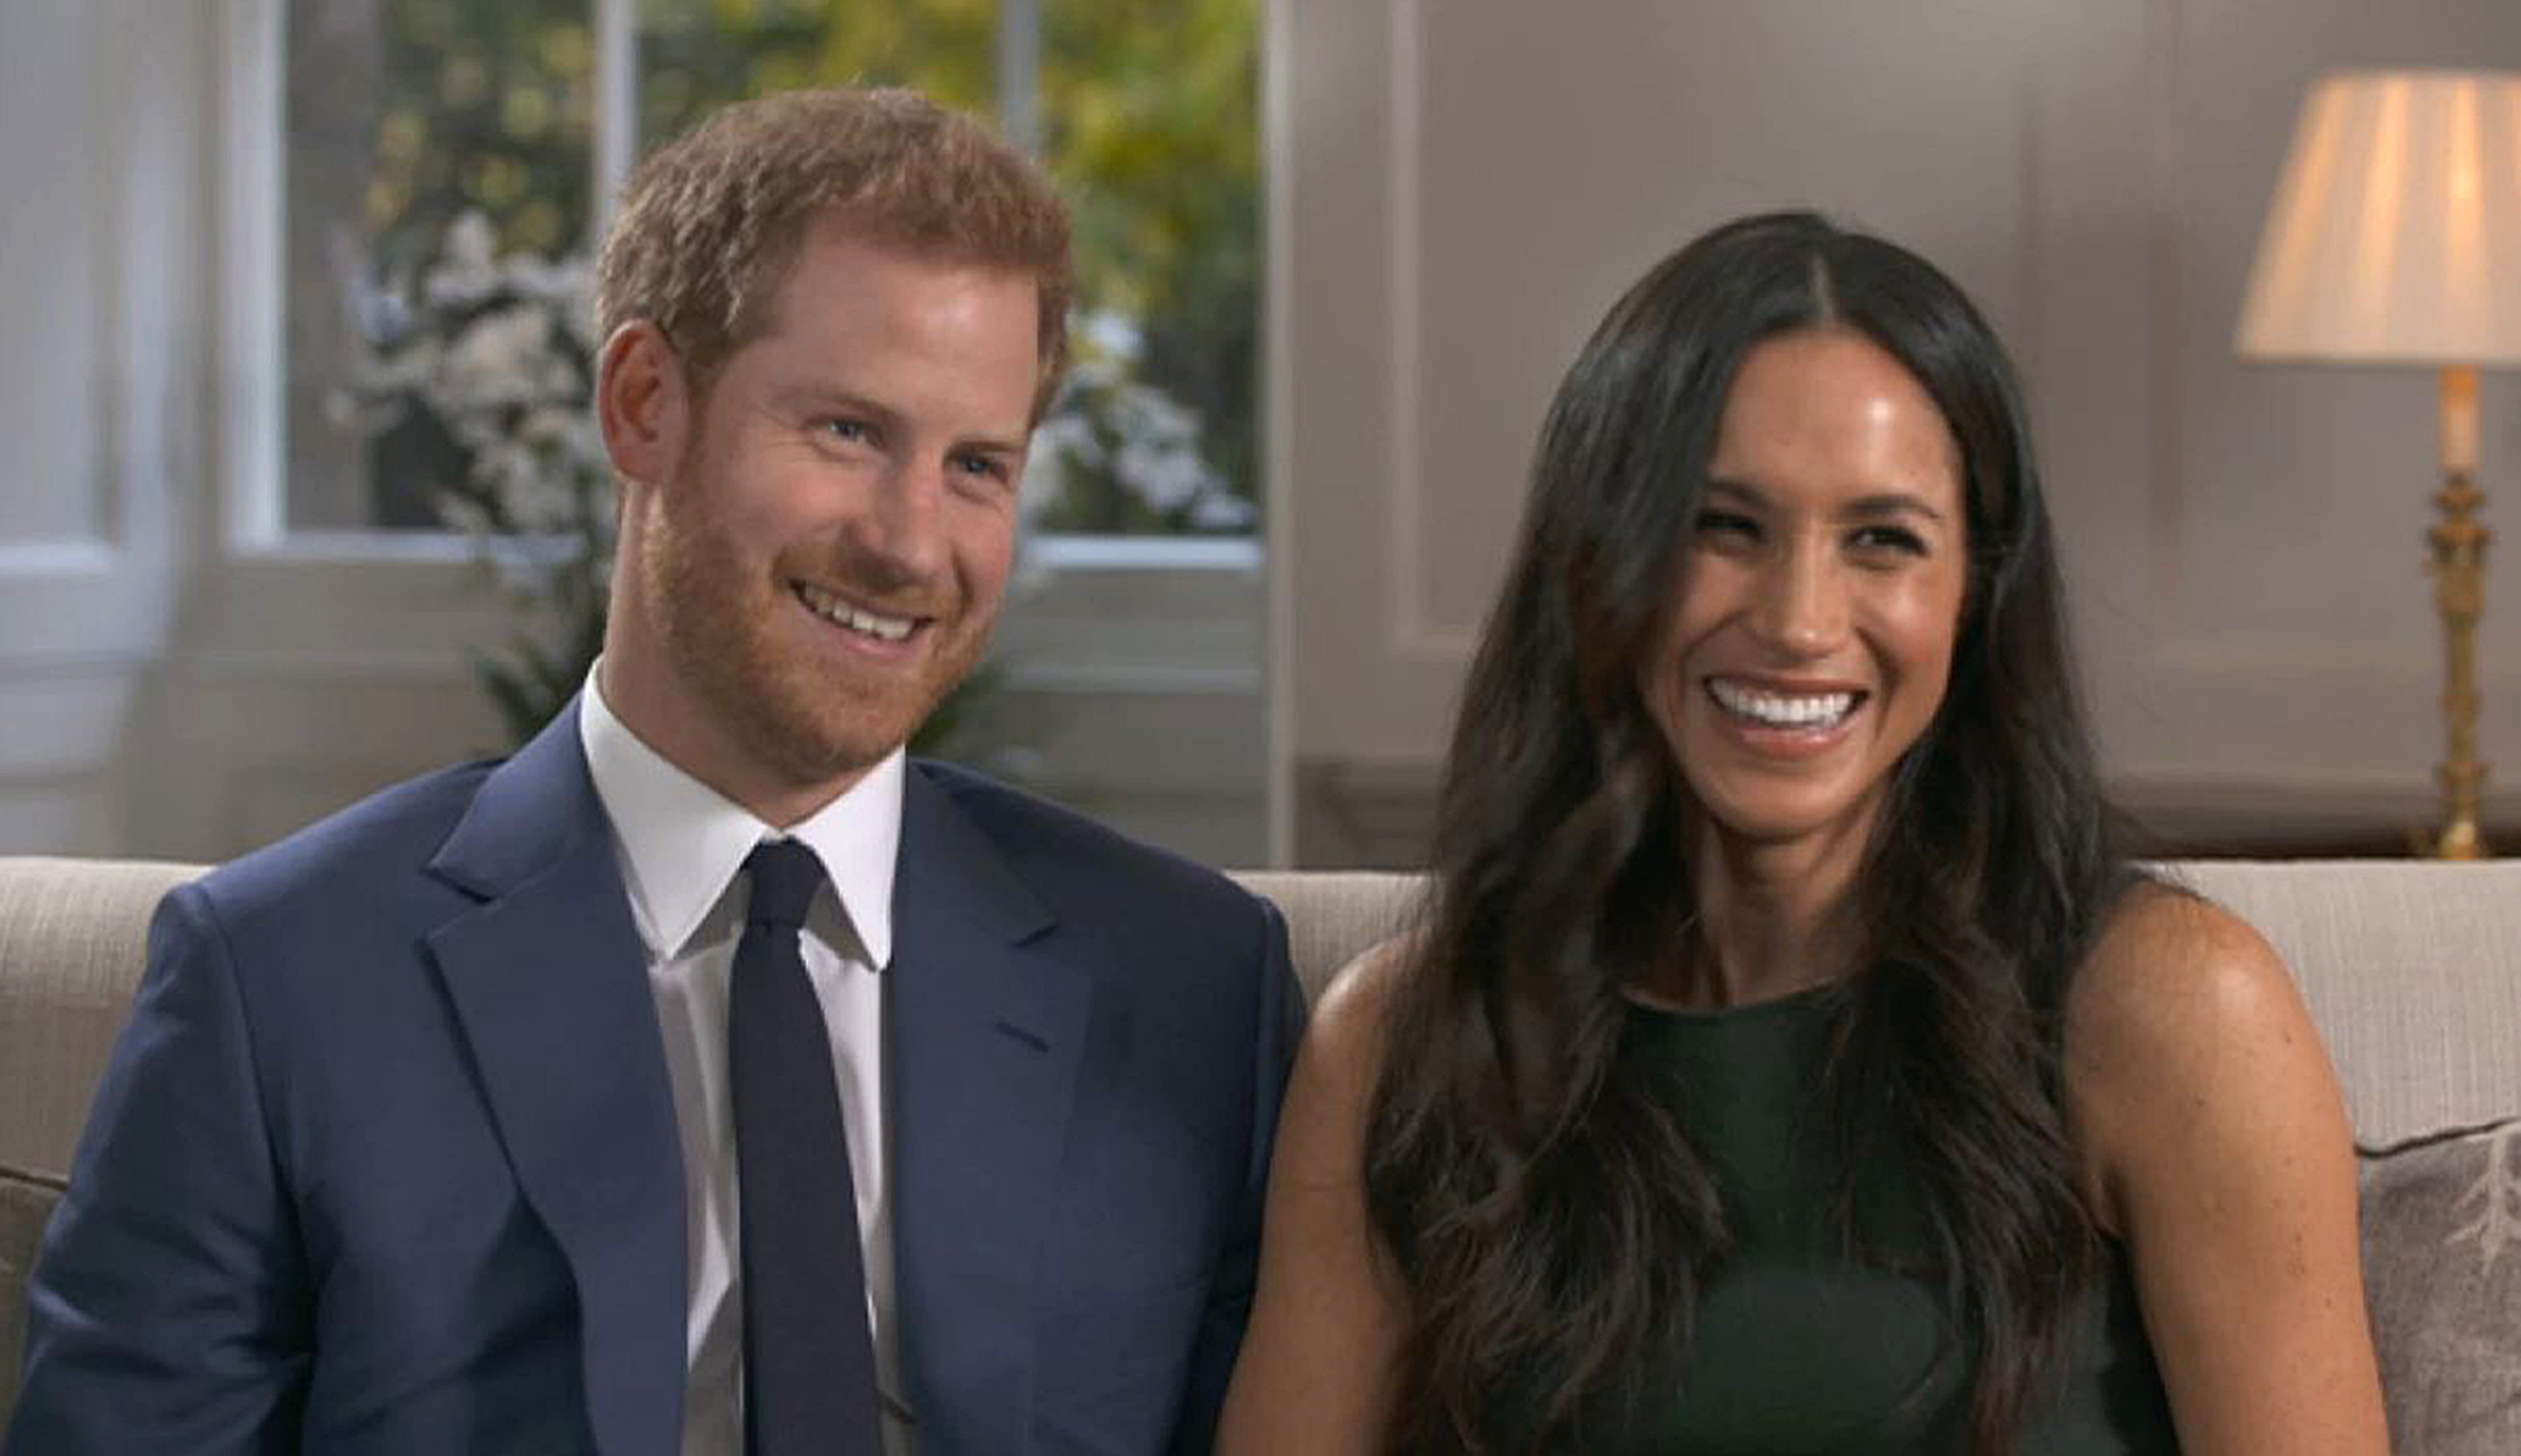 Prince Harry and Meghan Markle (BBC/PA Wire)